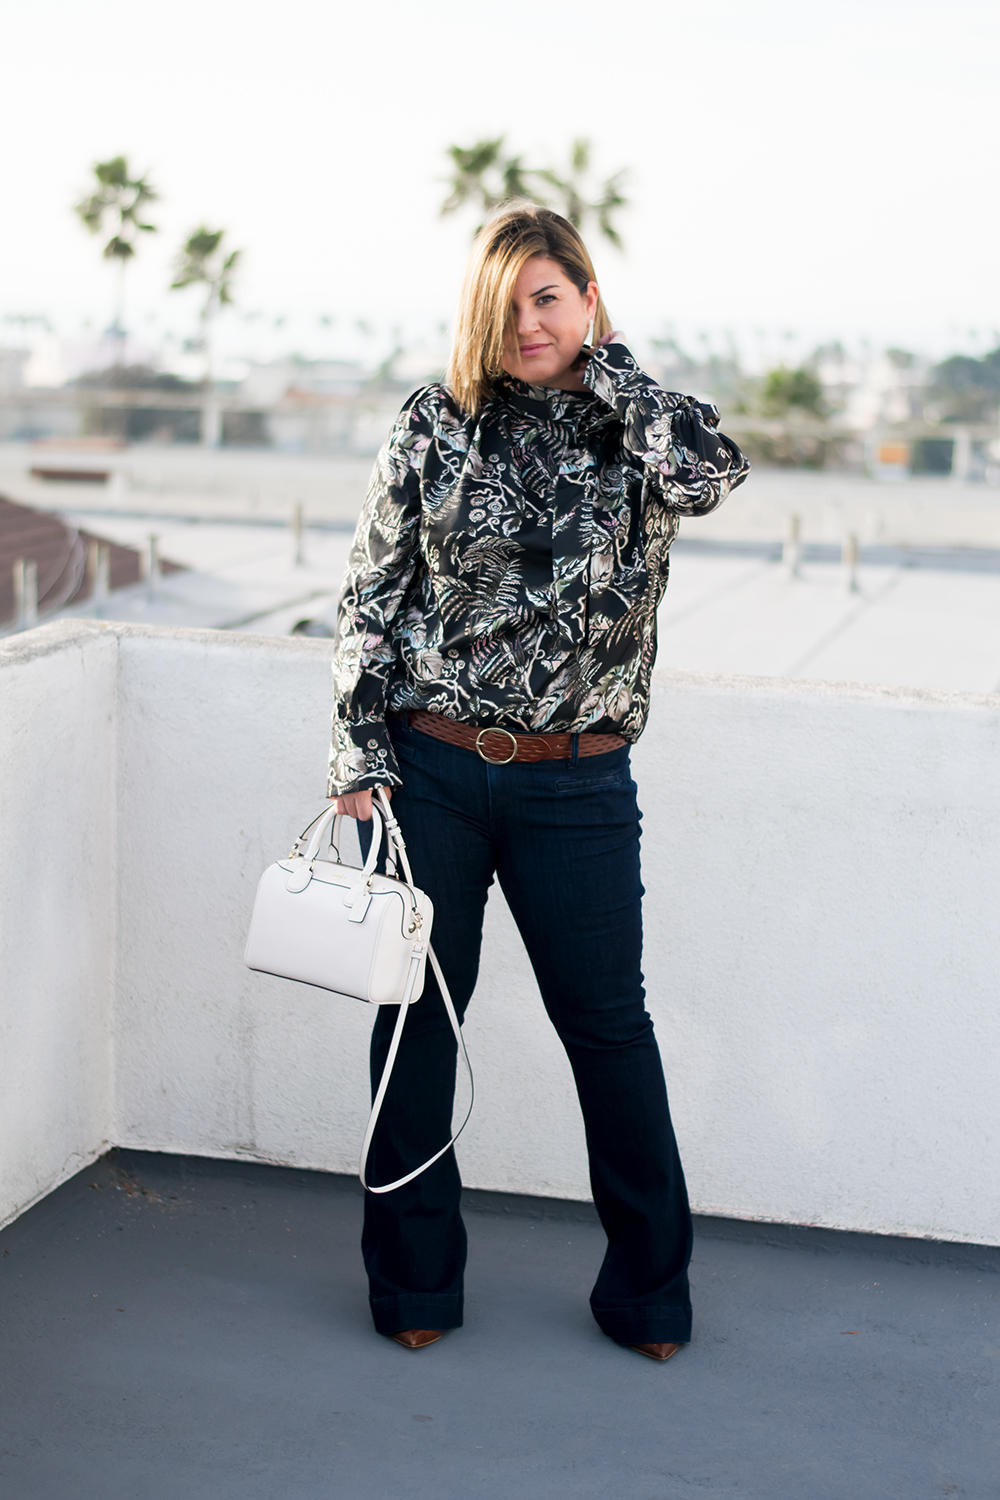 Closet Staples The Printed Blouse Wardrobe Basics Capsule Wardrobe Barefoot In LA Fashion Blog Stylist Best Outfits of 2018 0075